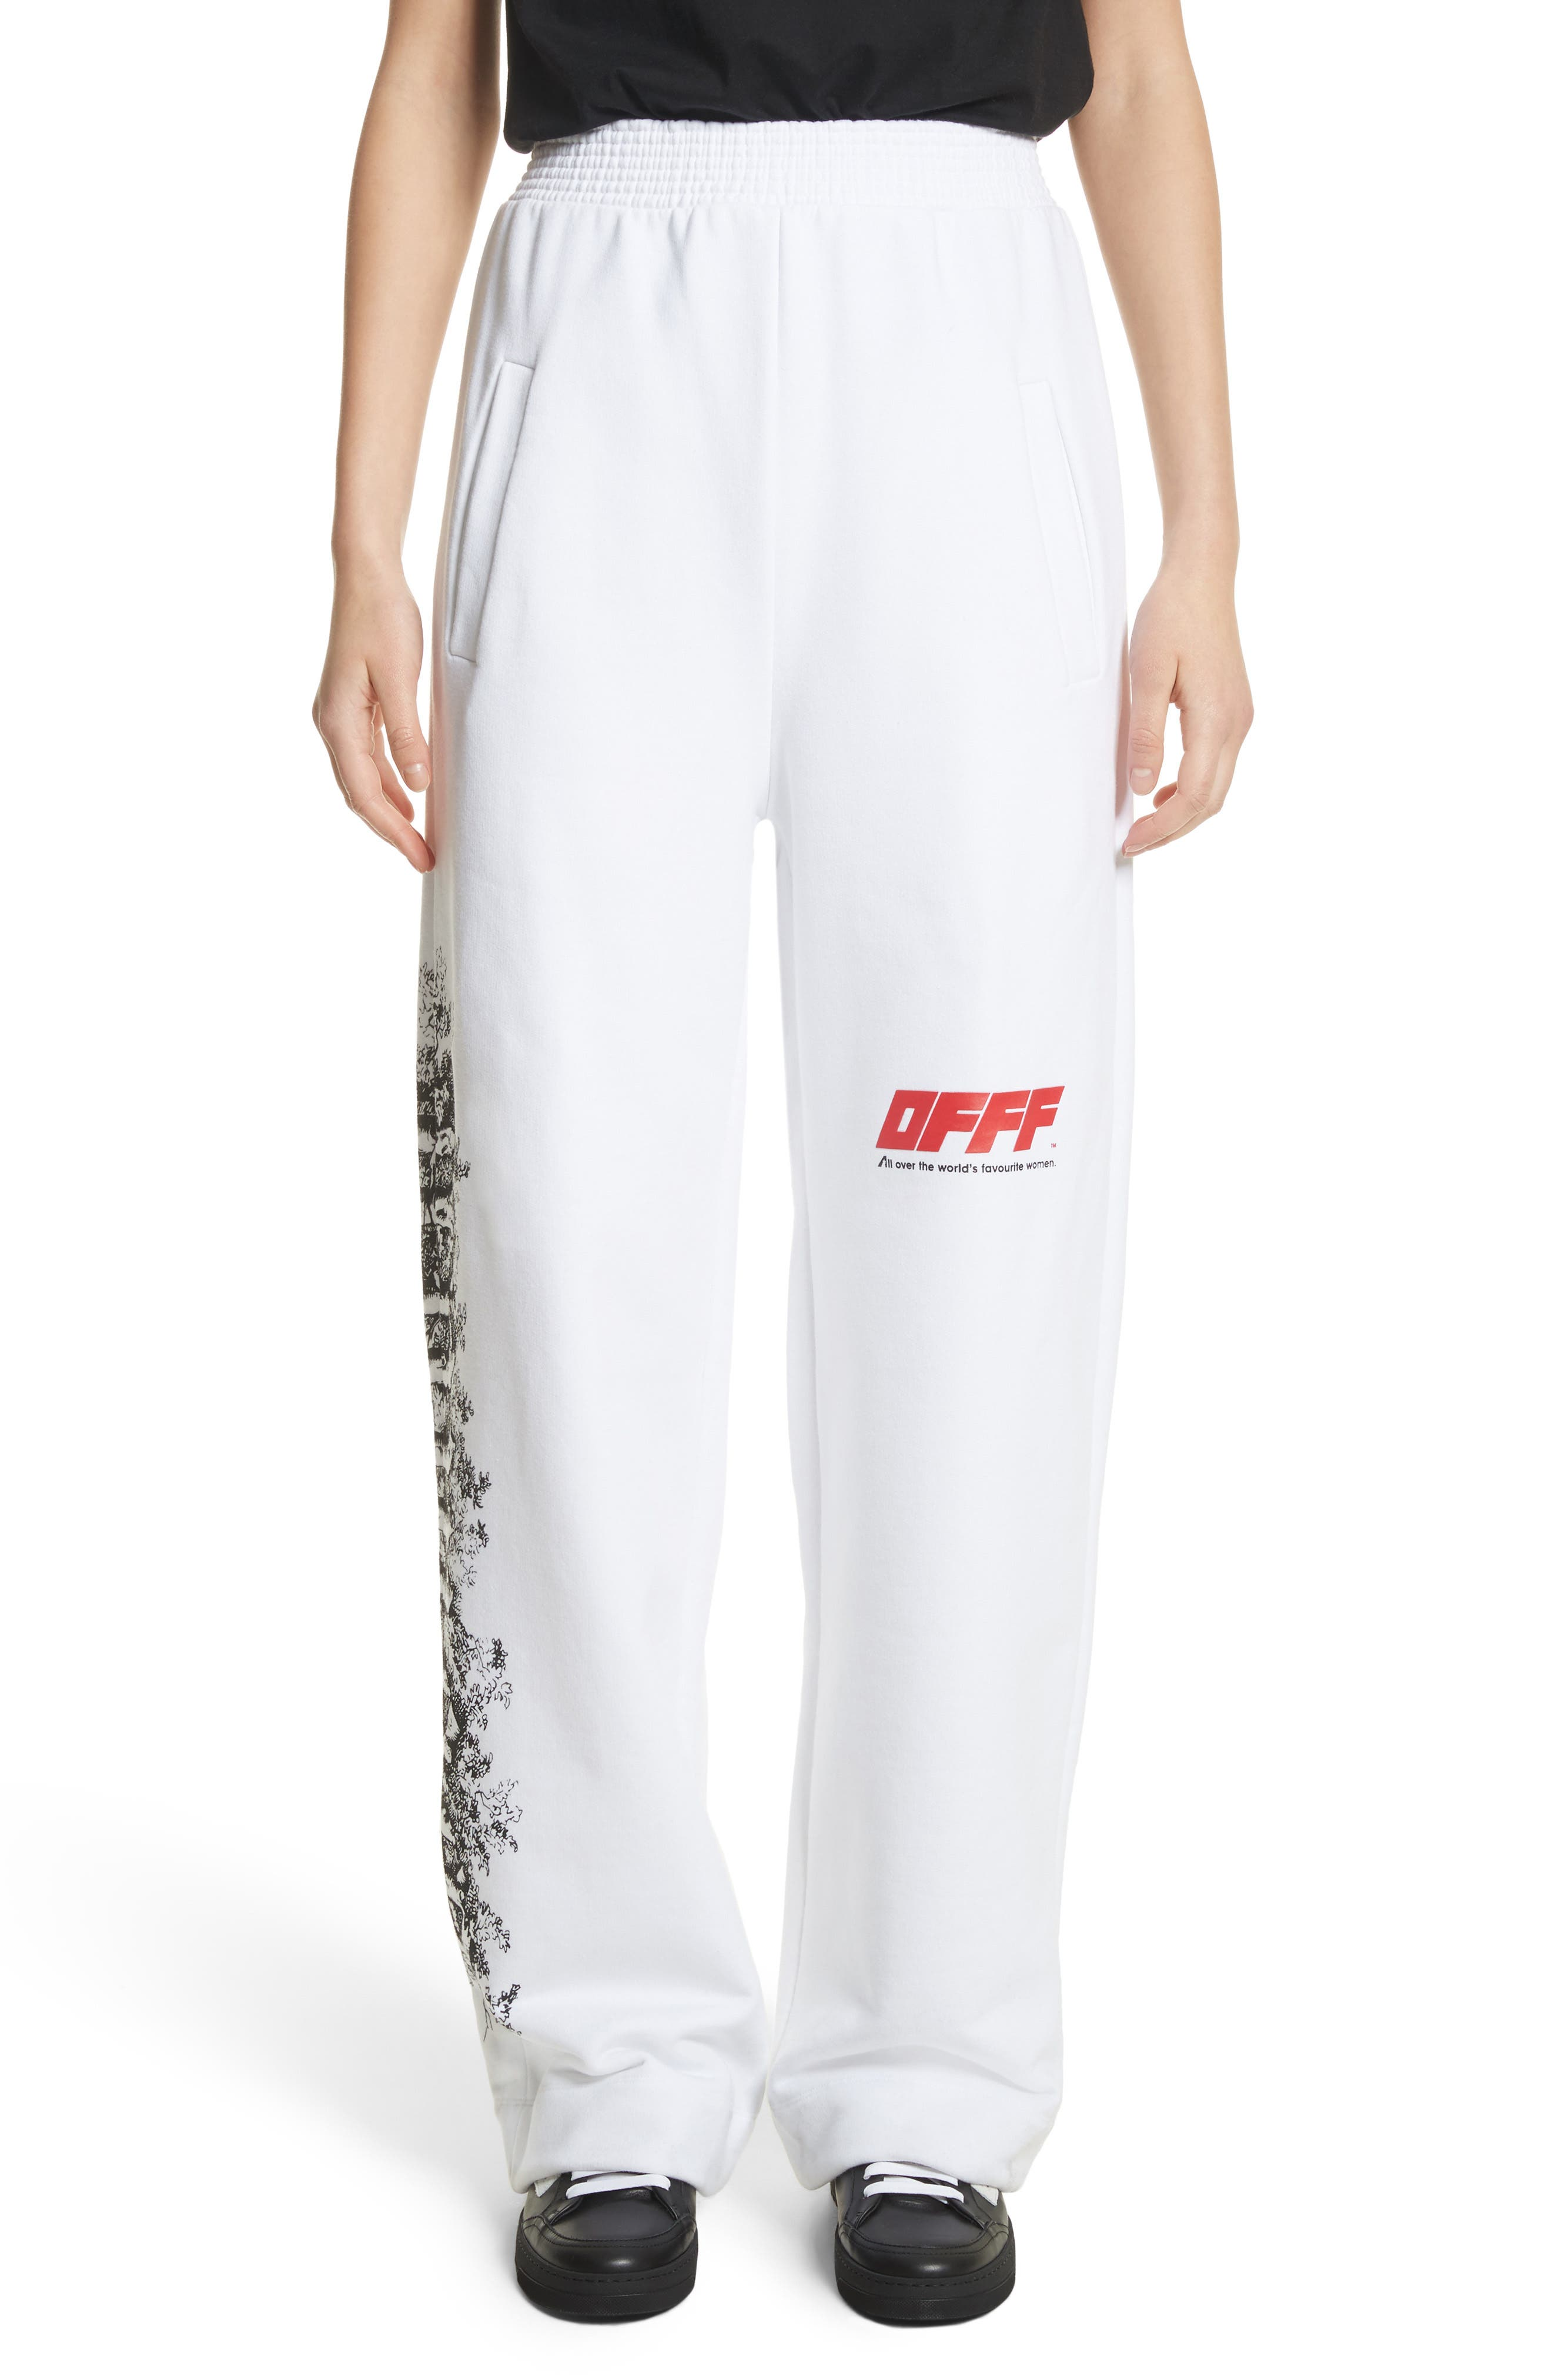 OFFF Sweatpants,                             Main thumbnail 1, color,                             White Red